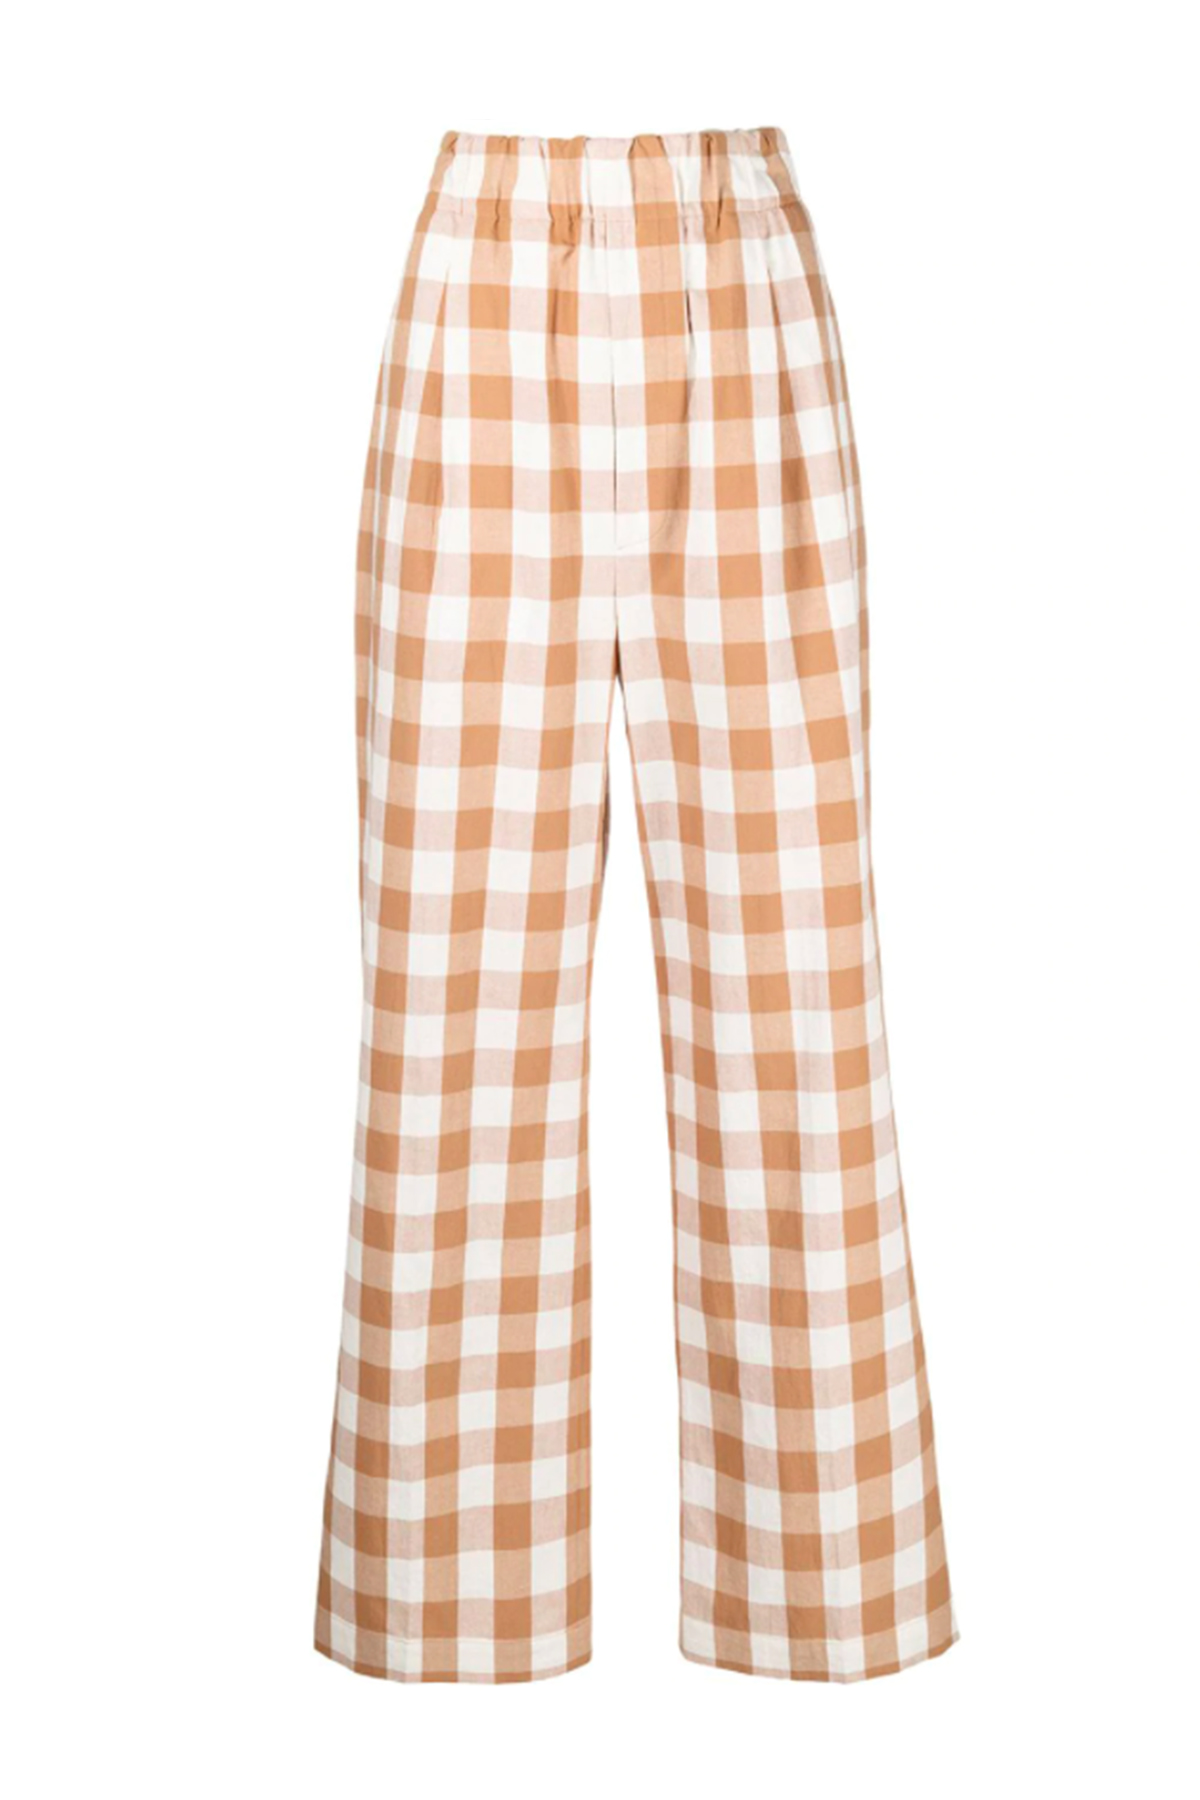 Jejia Cottons TROUSERS